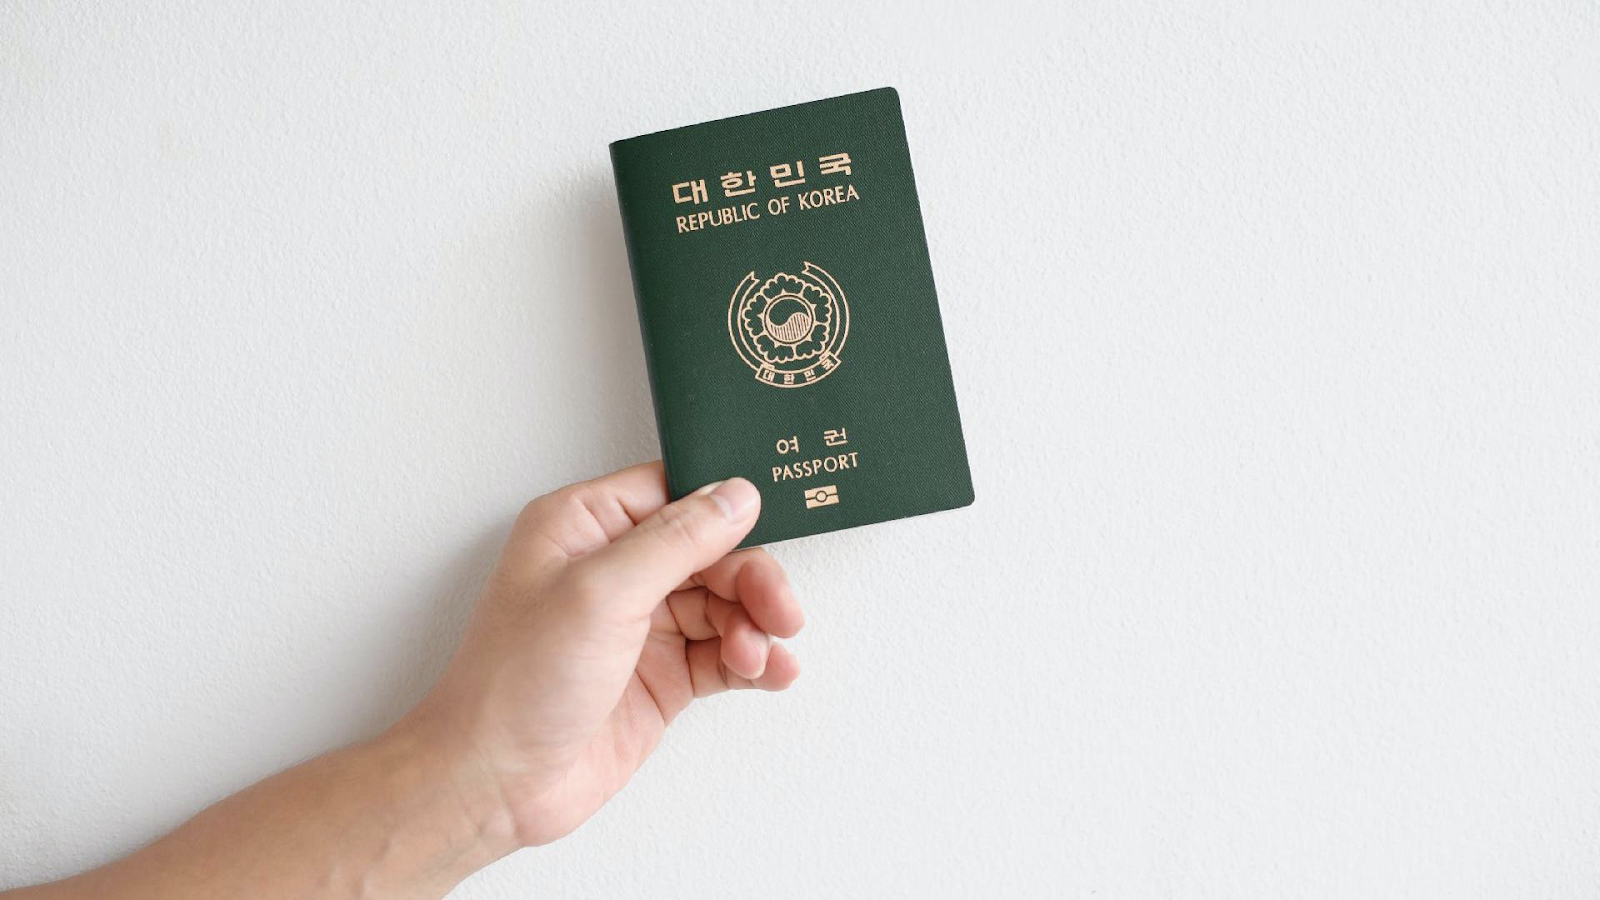 Hand holding passport of the Republic of Korea on white background